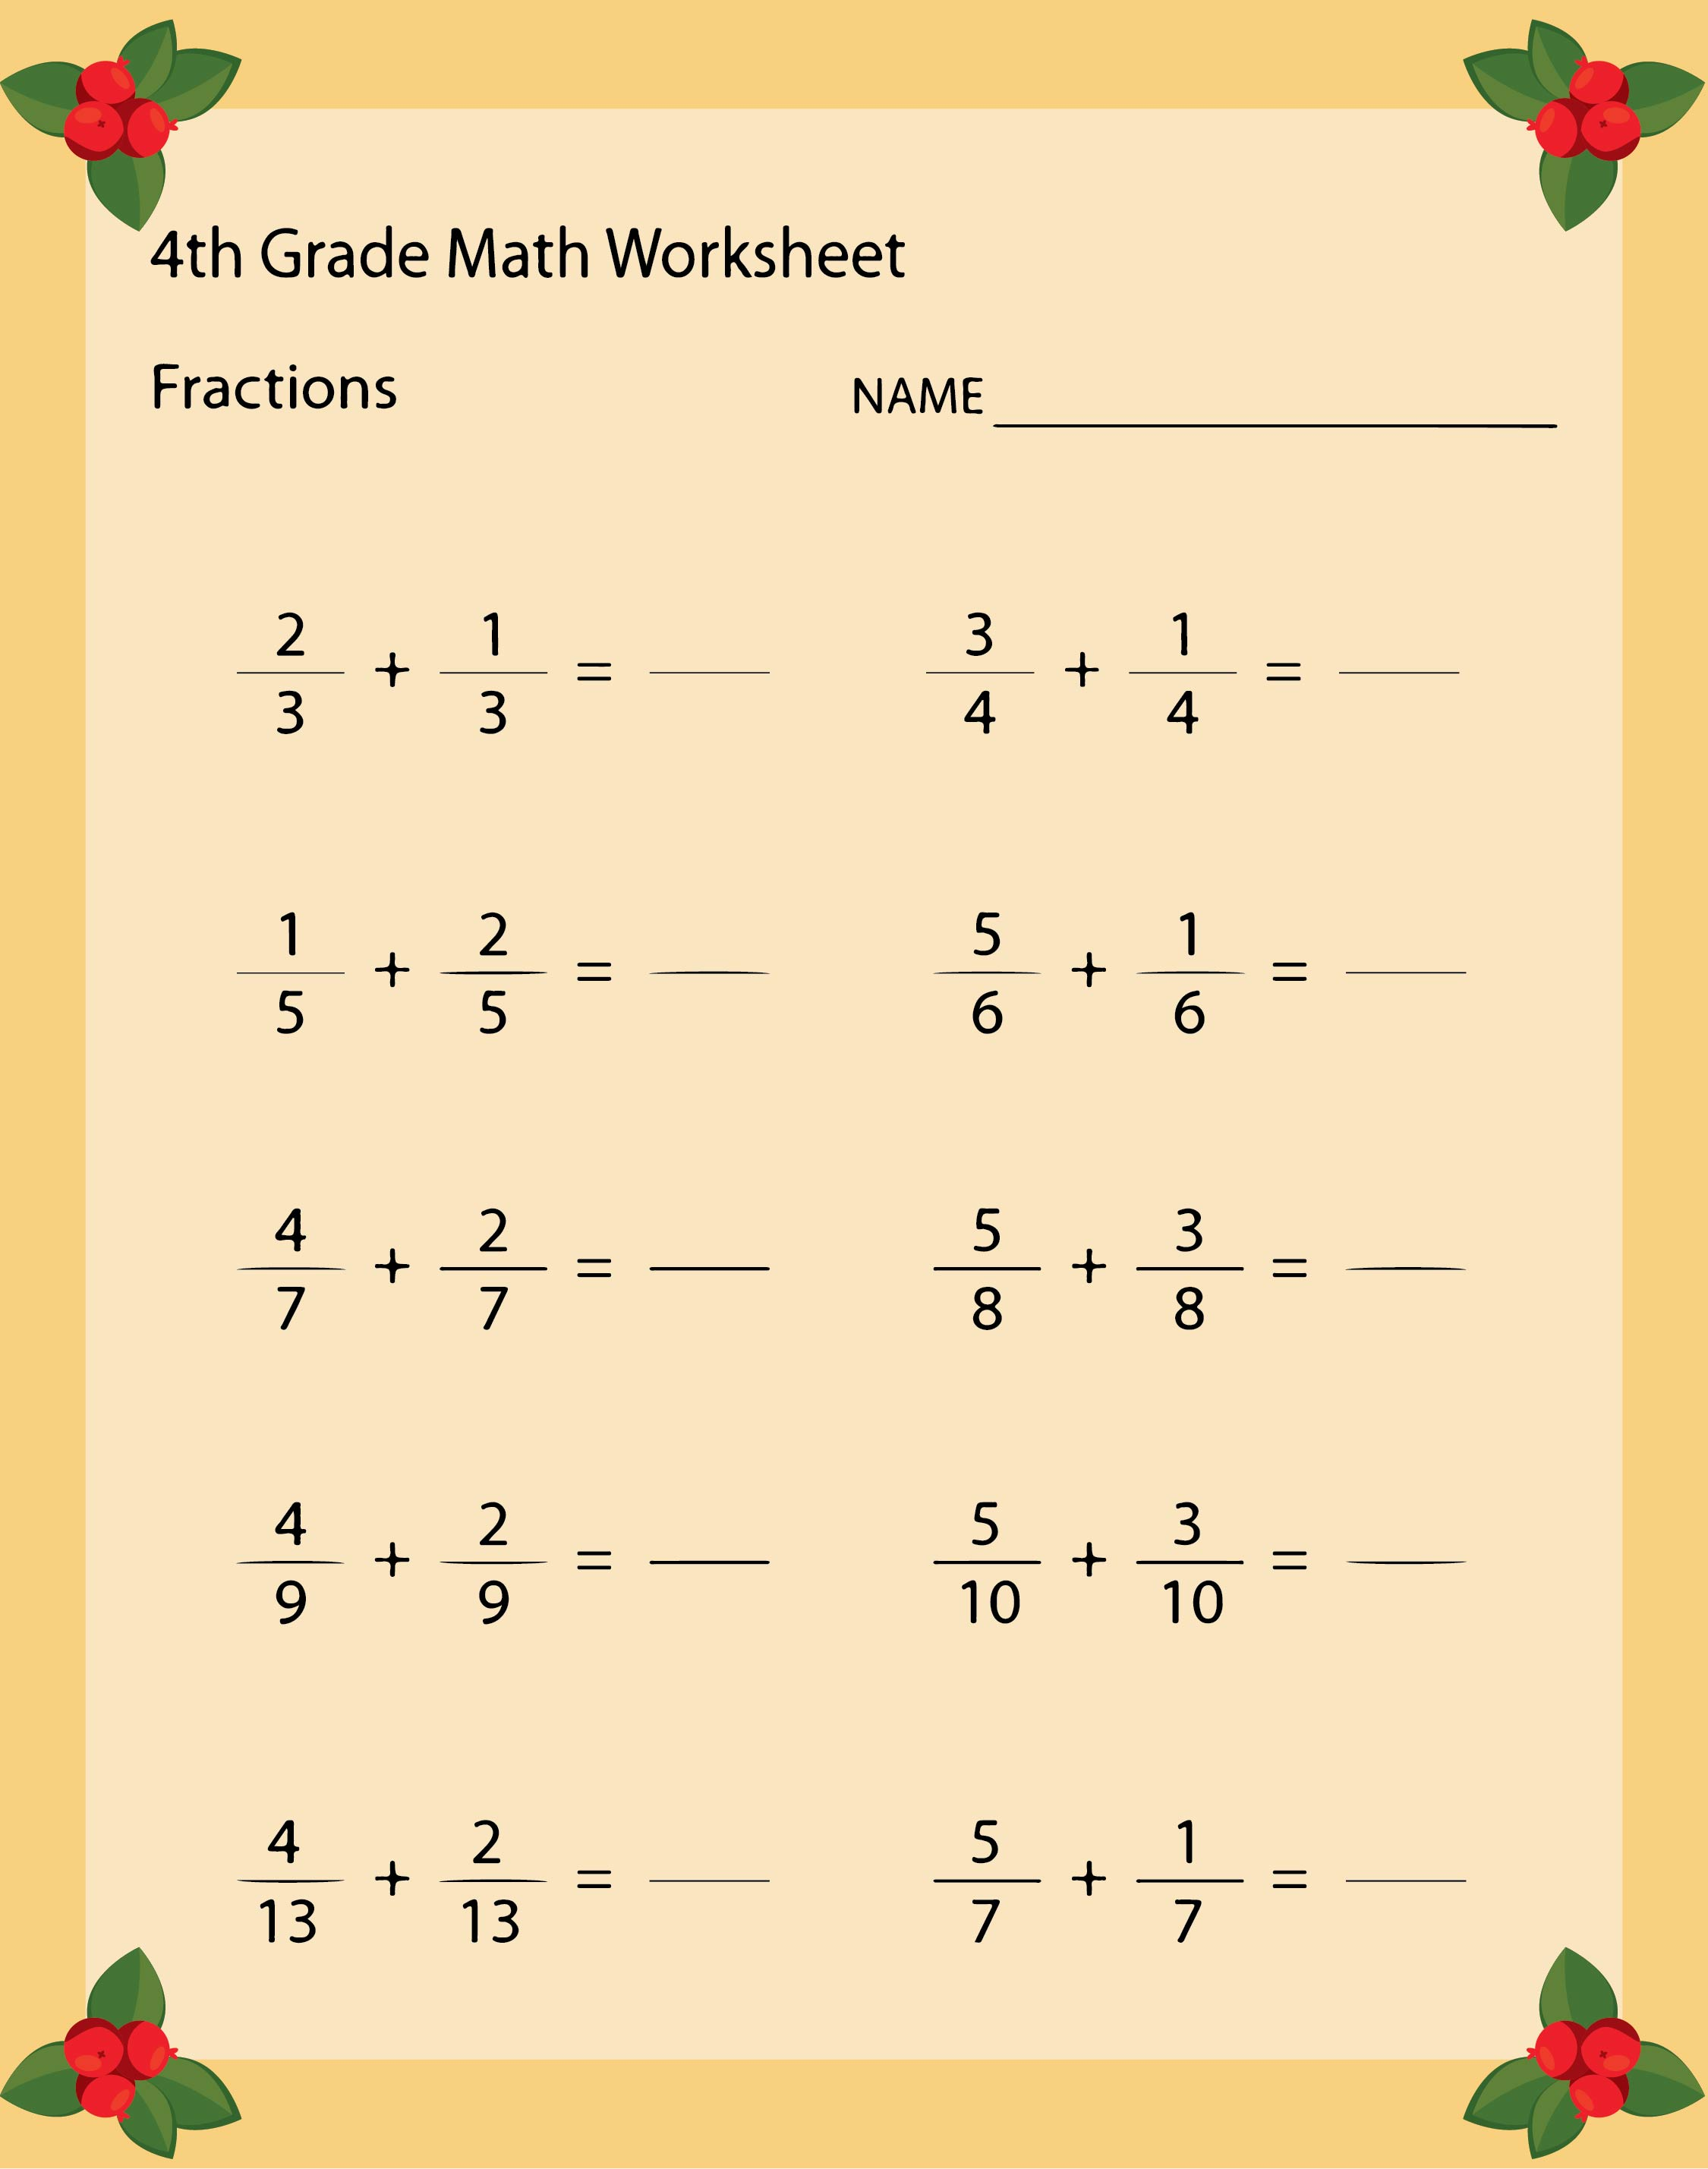 Free Printable Math Worksheets For 4th Grade Davezan – Free 4th Grade Math Worksheets